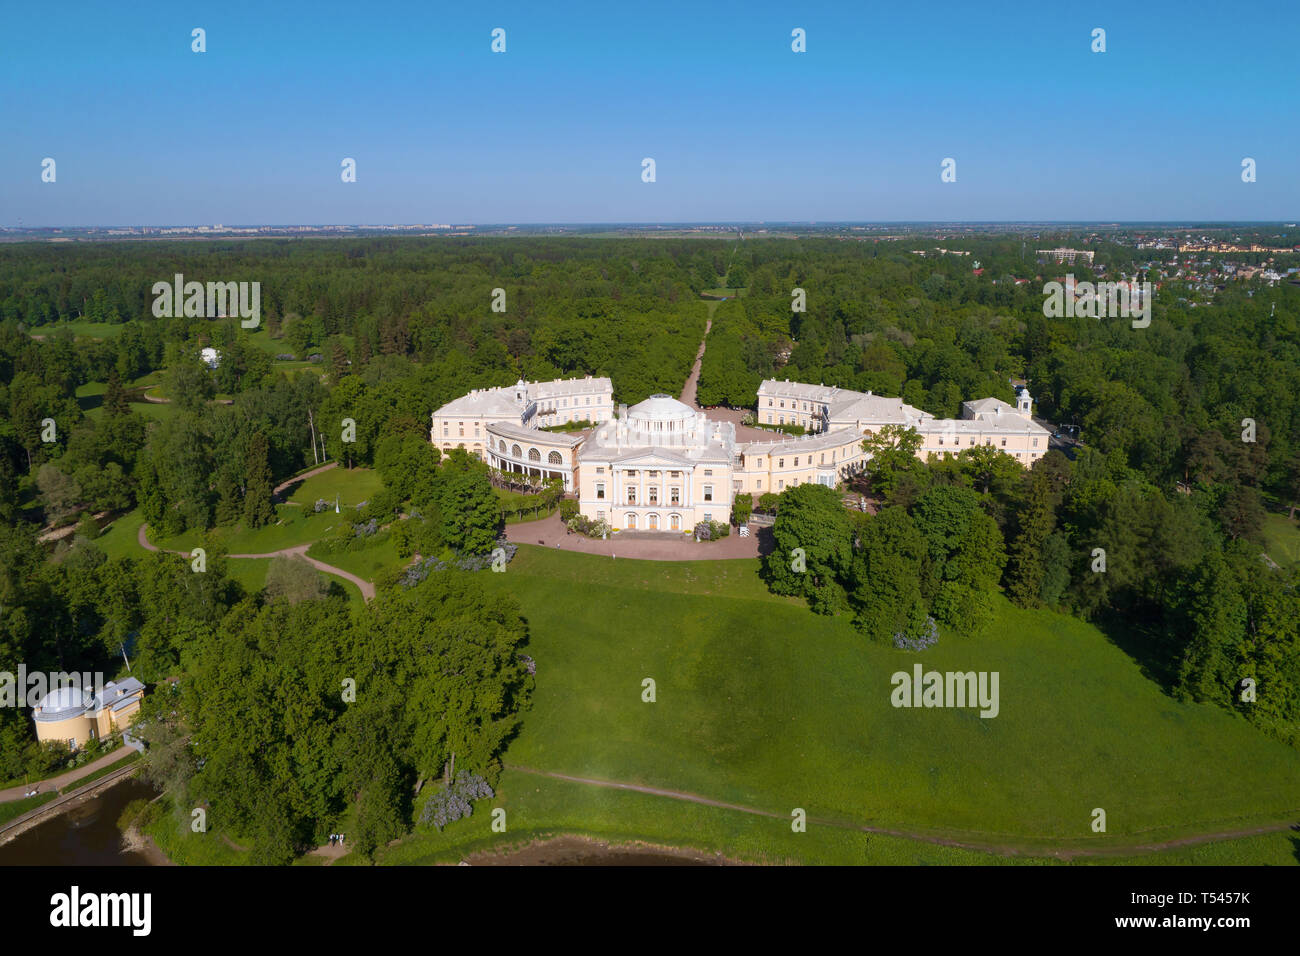 The Pavlovsk Palace in a summer landscape (aerial photography). Vicinities of St. Petersburg, Russia - Stock Image